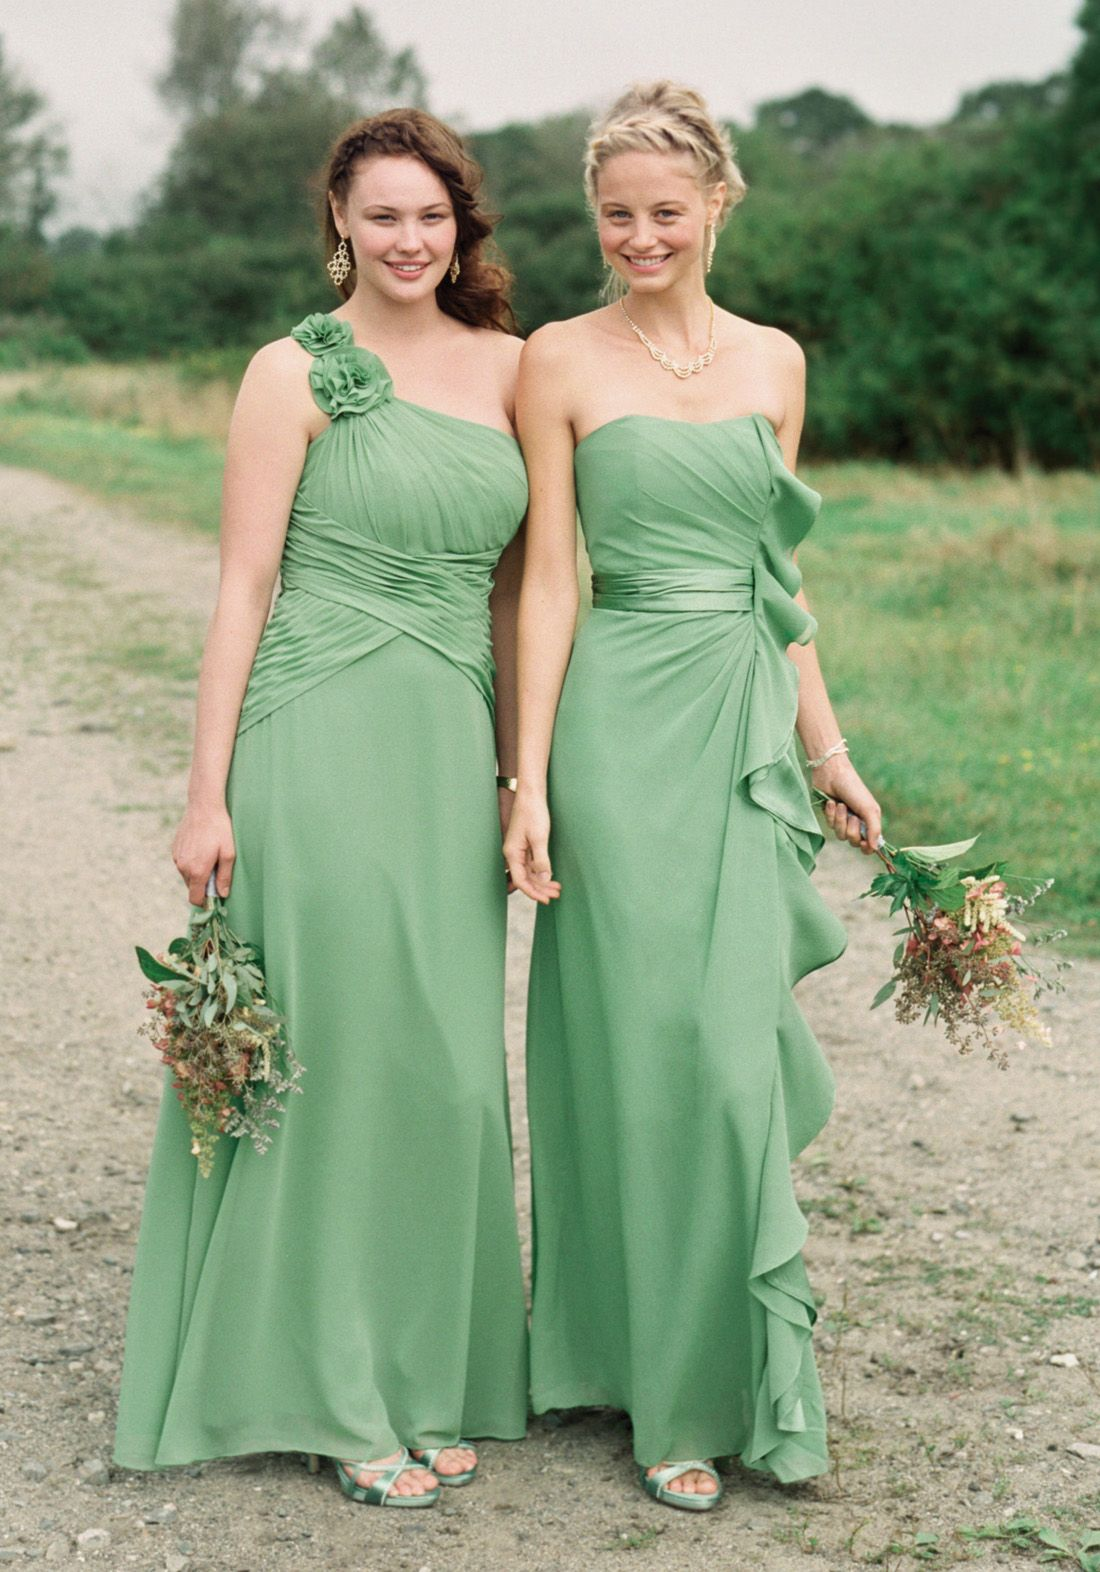 Check out styles f14010 and f14336 in clover as well as all of clover green bridesmaid dresses wedding and bridal inspiration ombrellifo Choice Image